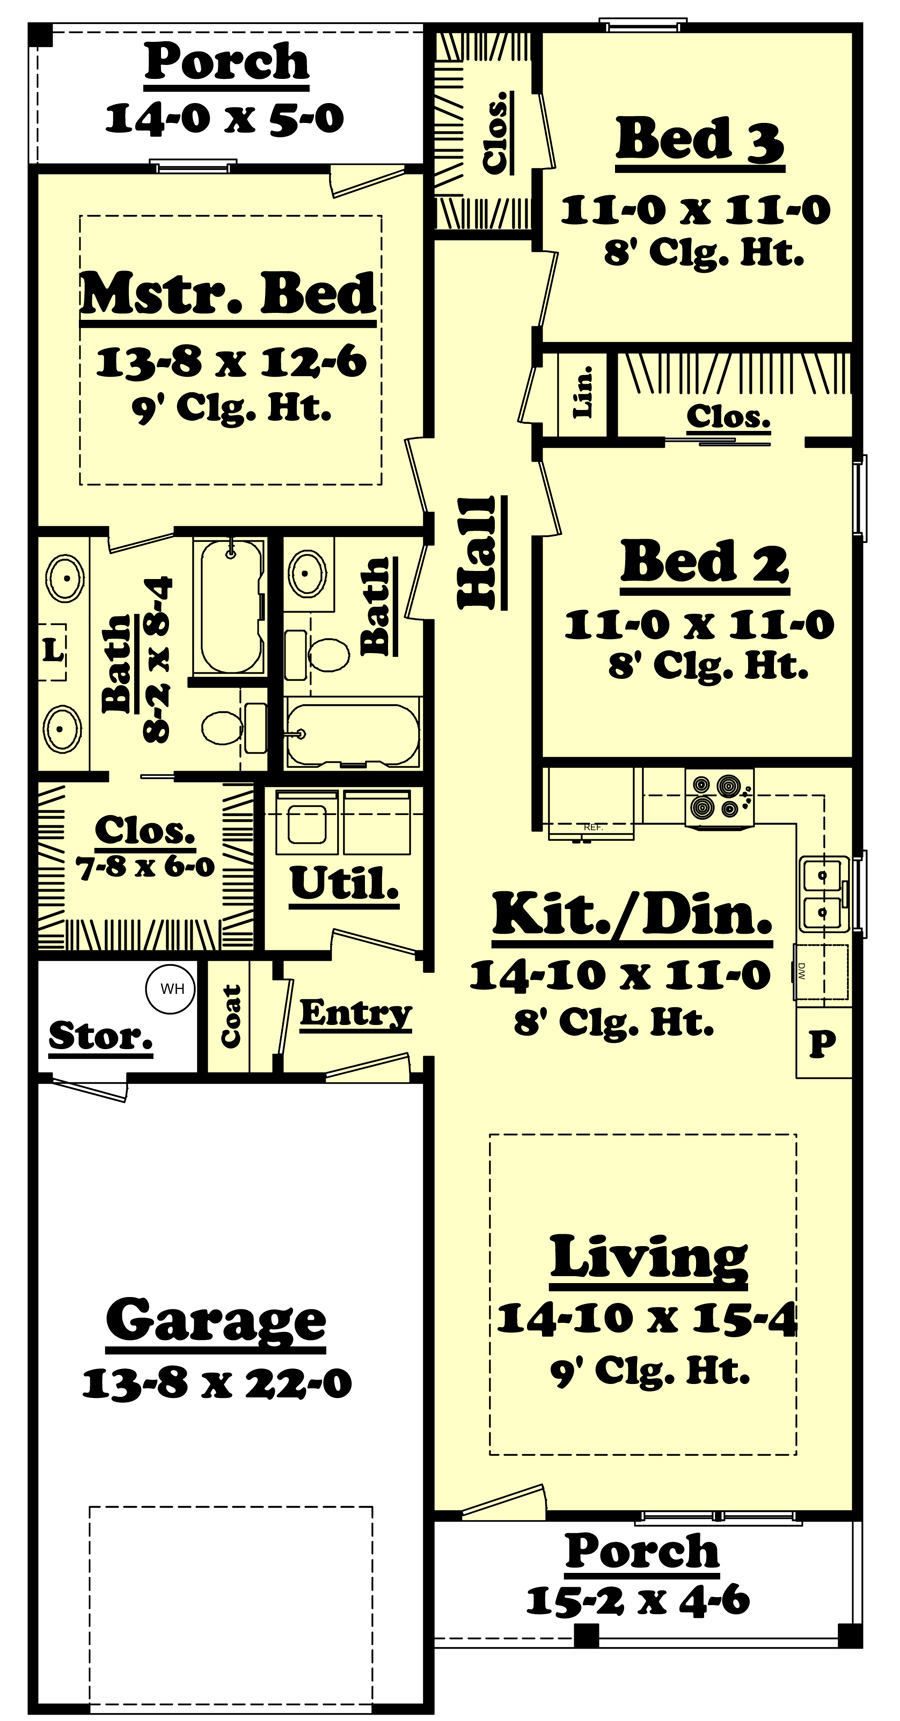 House Plan 142 1053 3 Bdrm 1 250 Sq Ft Traditional Home